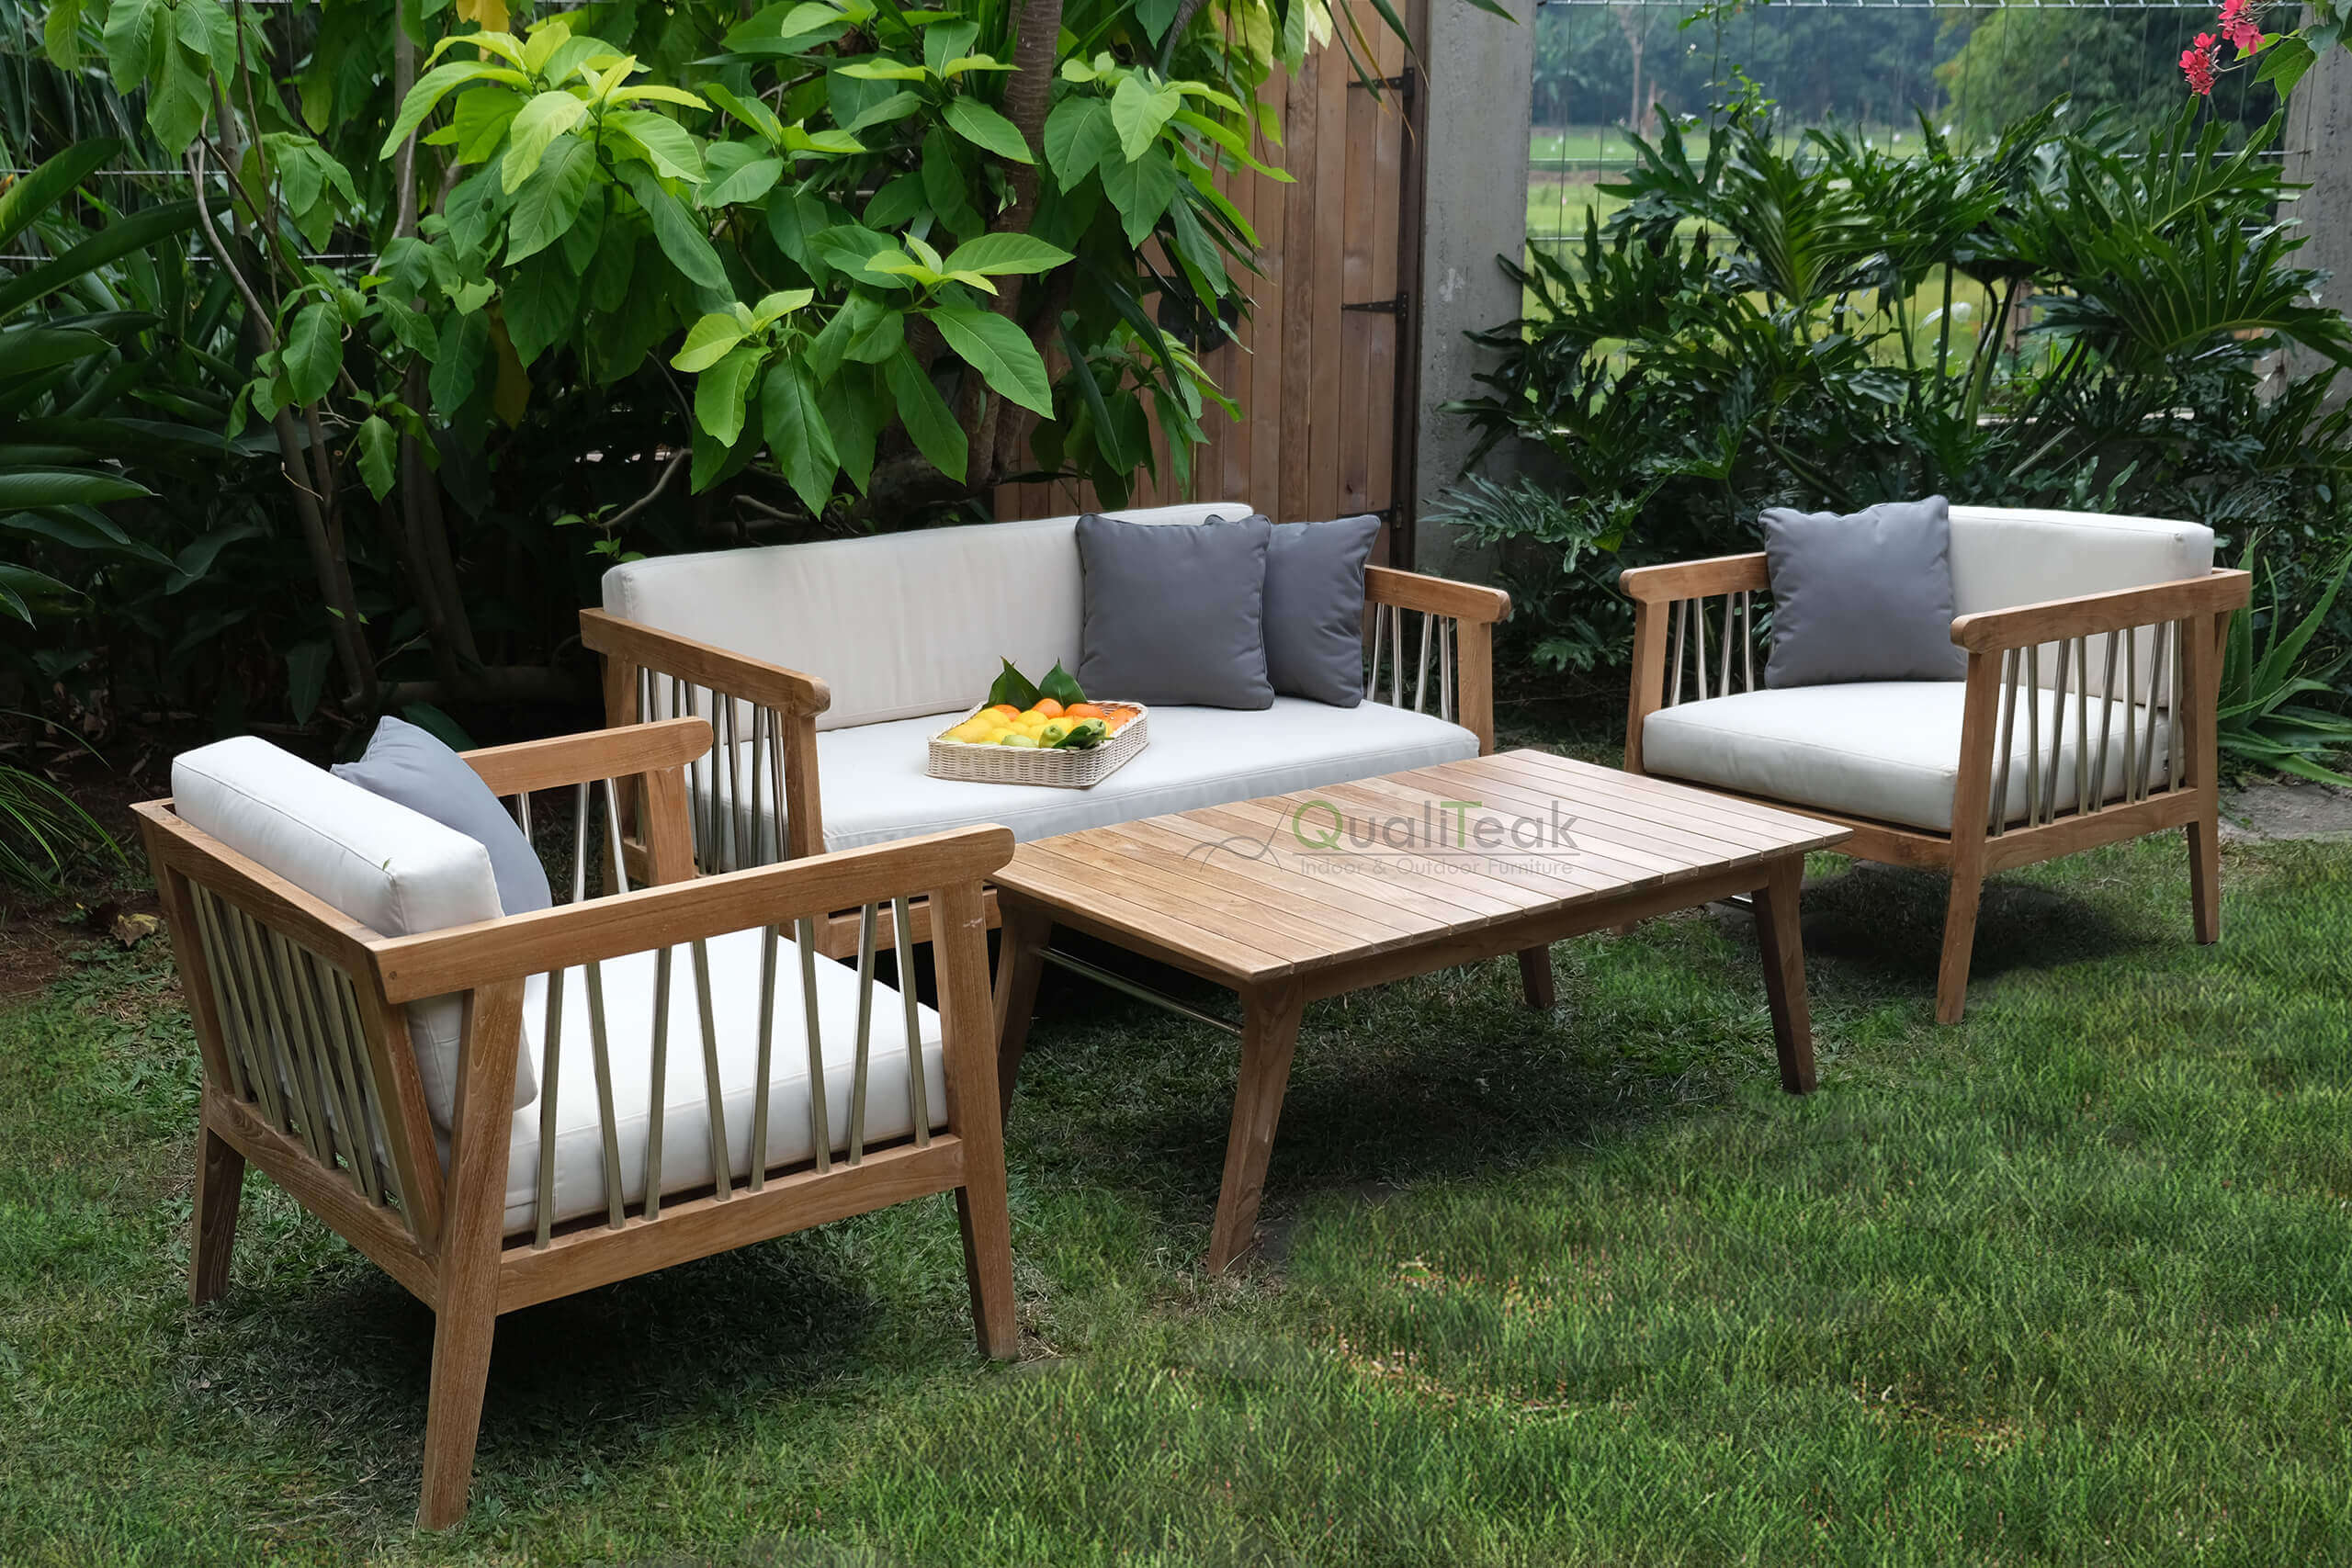 Indonesia Teak Furniture Manufacturer Veronicas Qualiteak